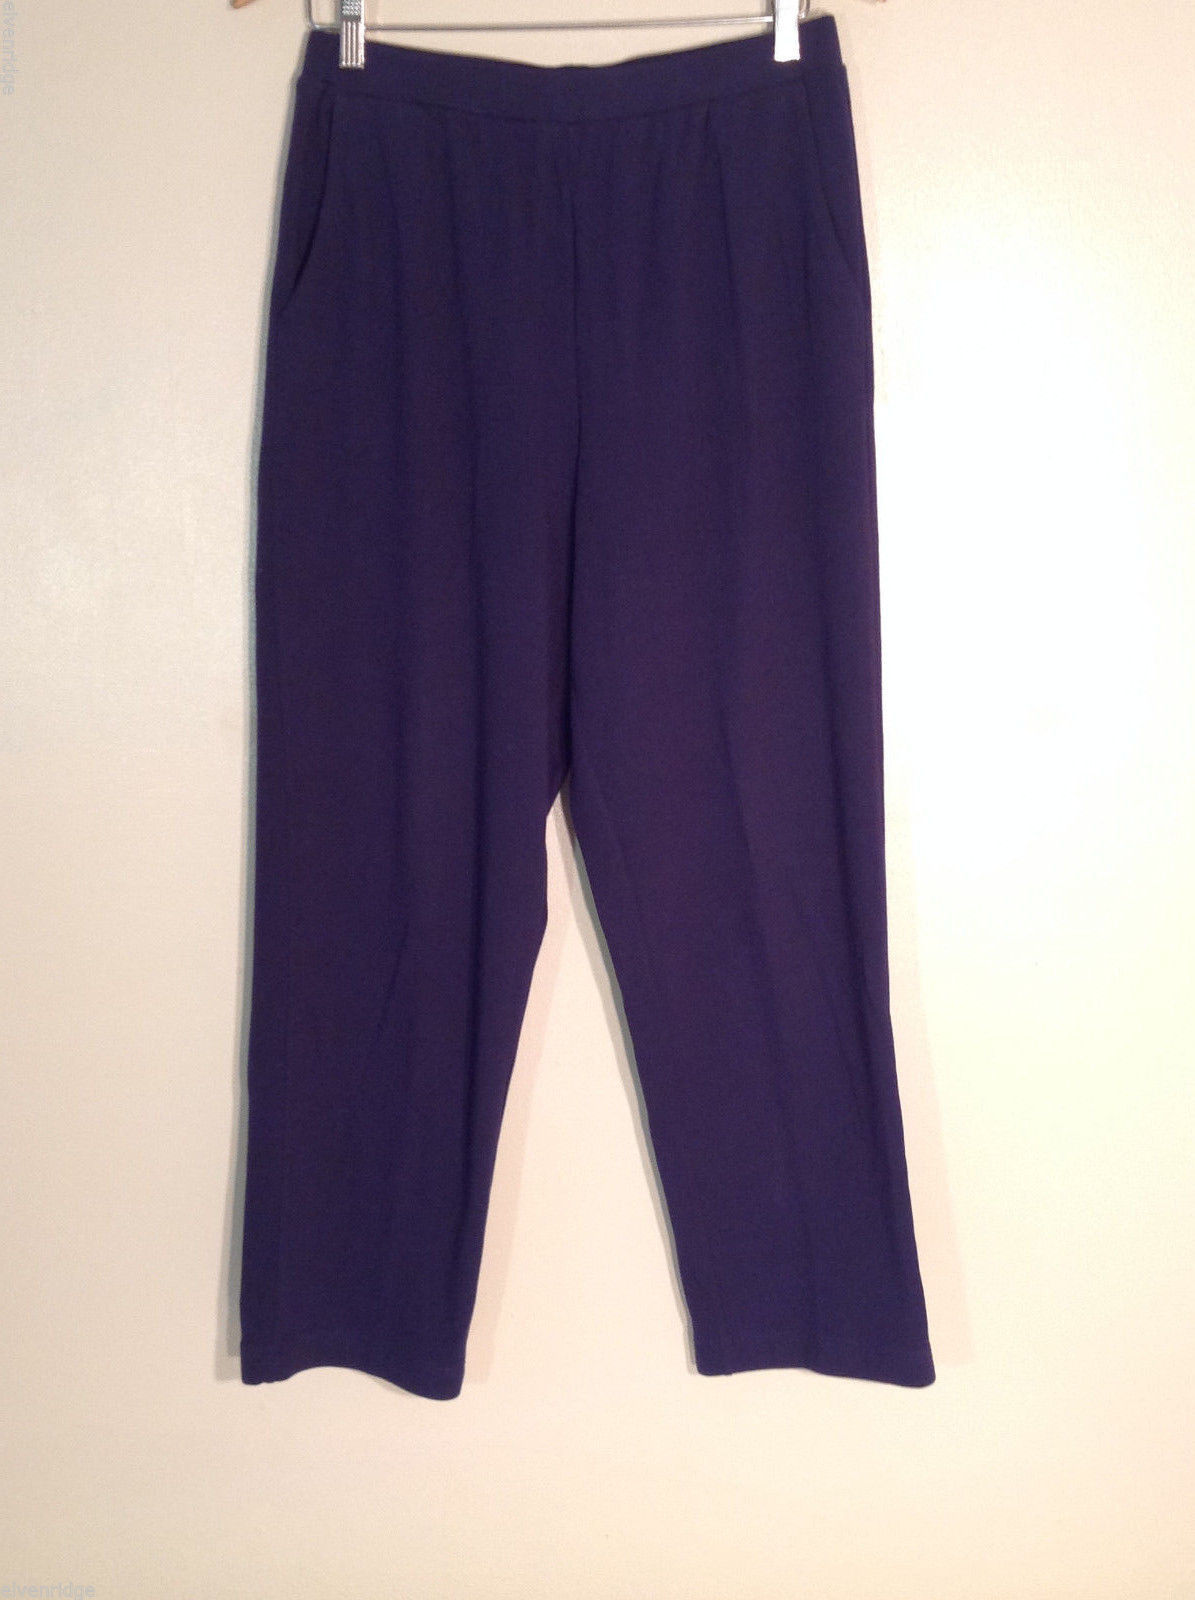 Appleseed's Women's Size M Pants Soft Knit Dark Navy Blue Relaxed Fit Pull-Ons